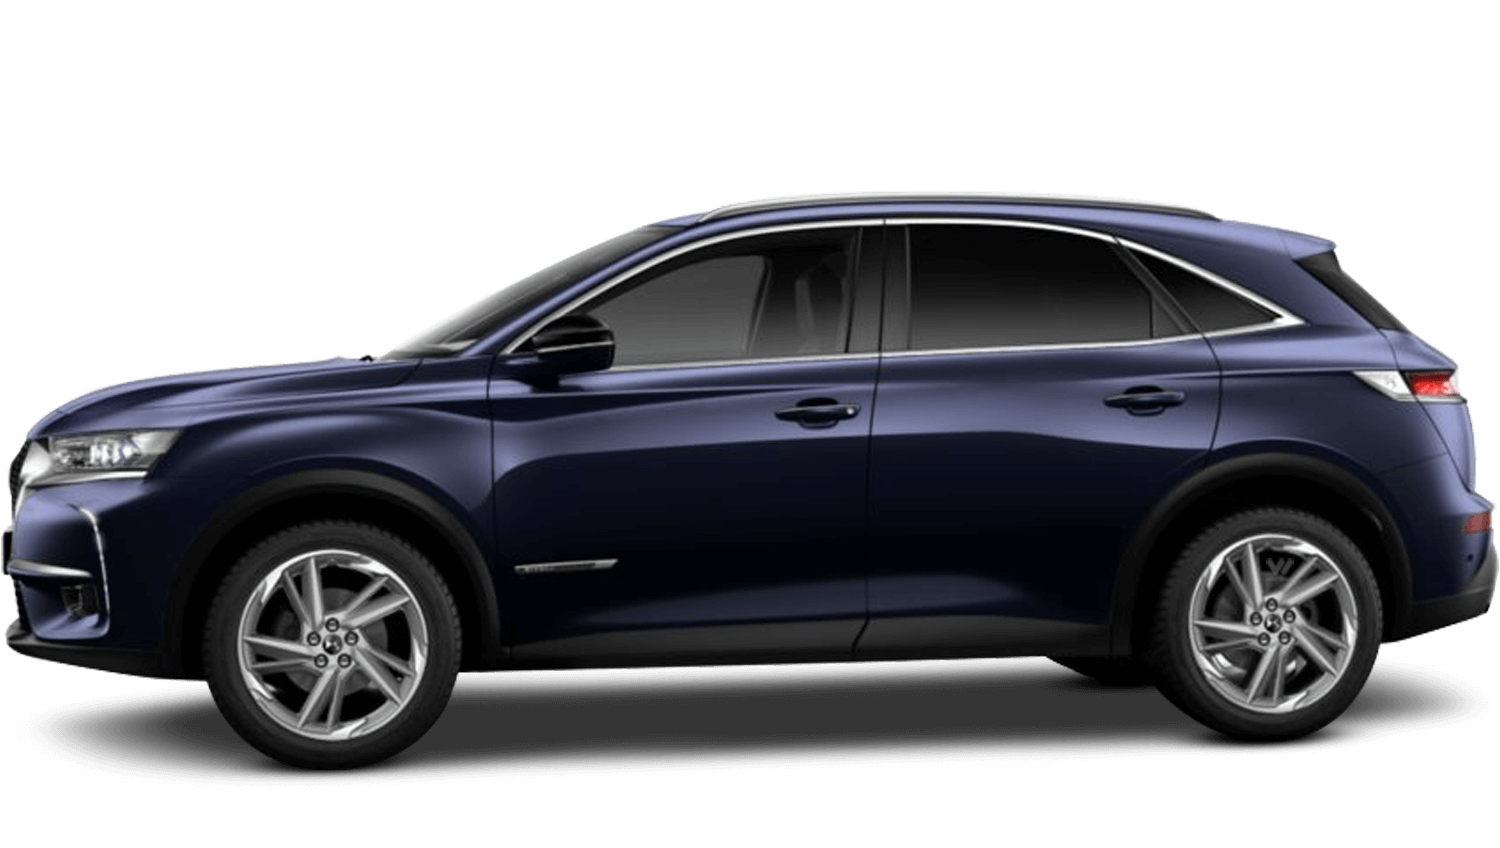 Ink Blue (Pearl) DS DS 7 Crossback